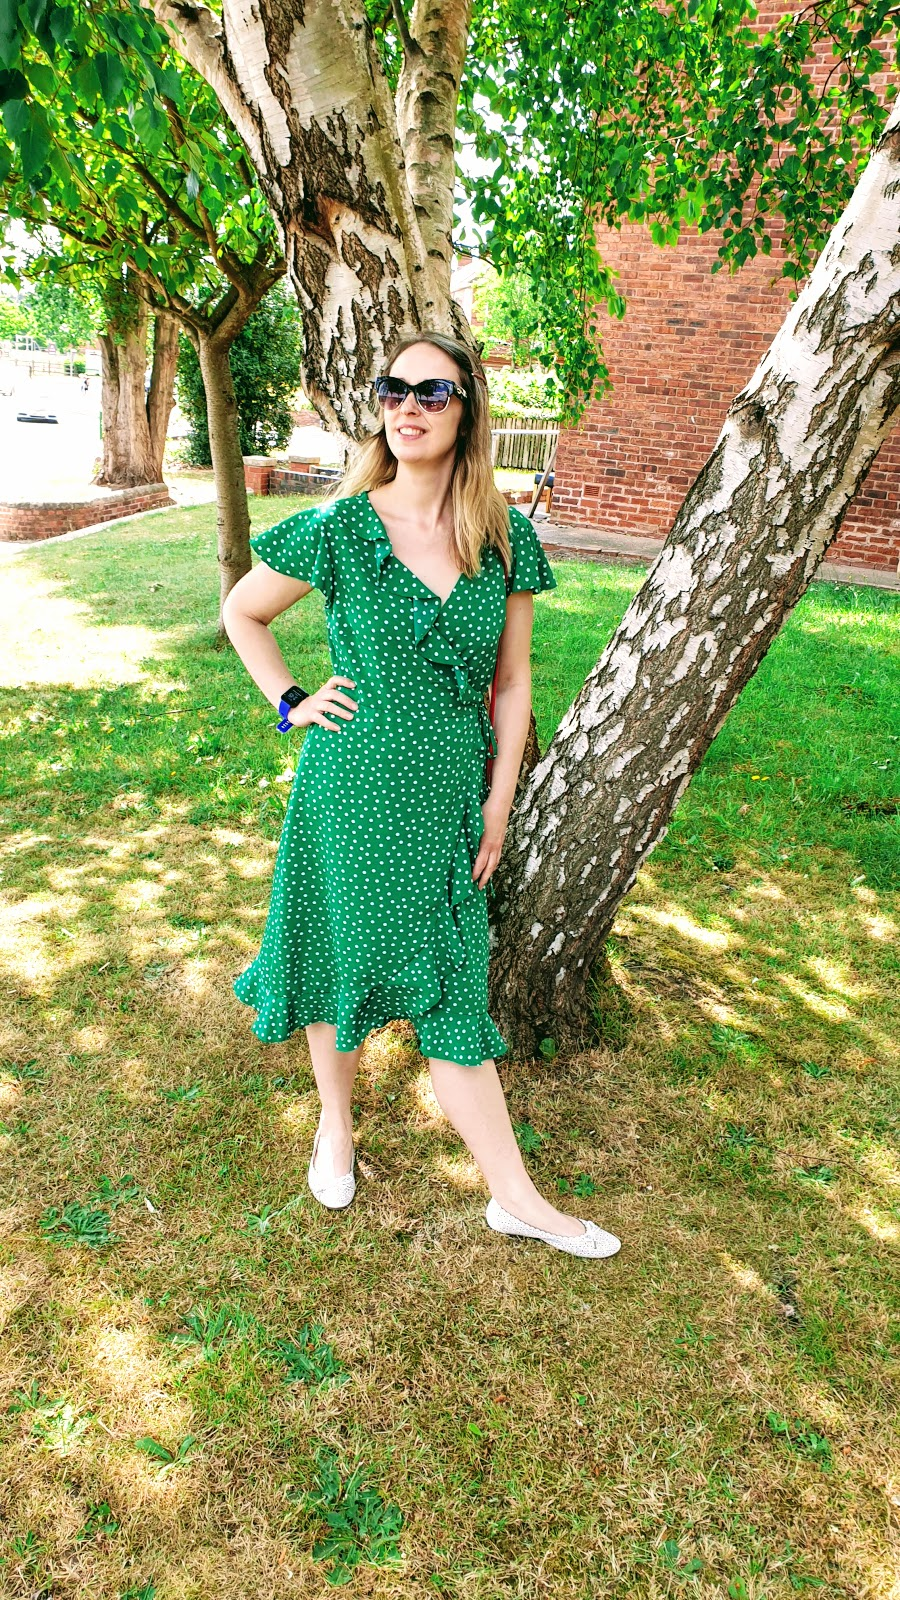 Green Polka Dot Wrap Around Dress: Over 40 Style